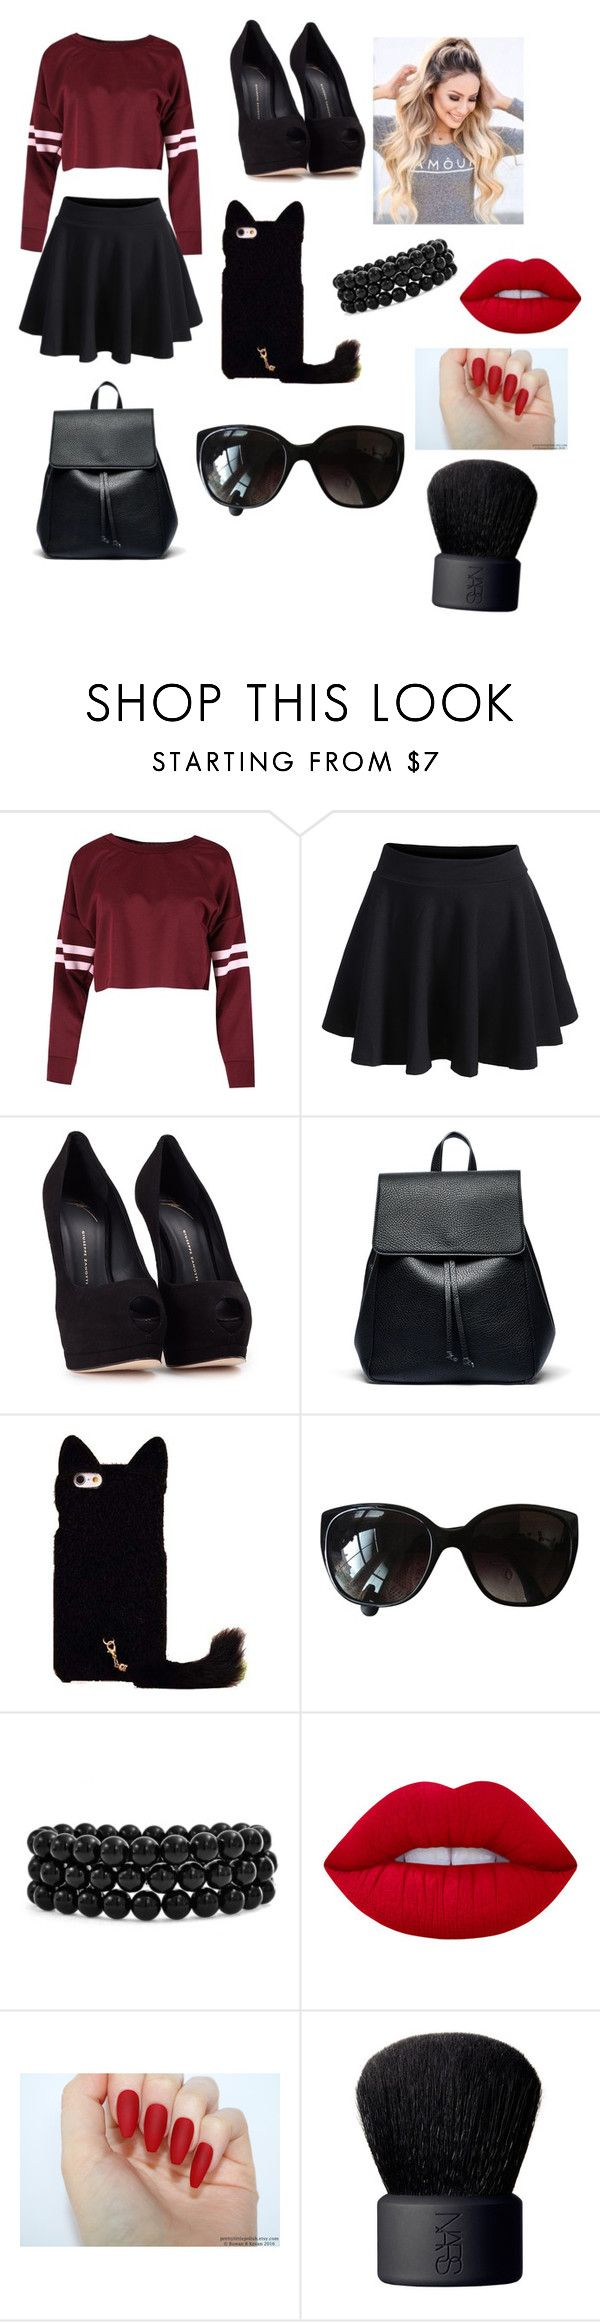 """""""My First Polyvore Outfit"""" by cucito-ivanova ❤ liked on Polyvore featuring WithChic, Giuseppe Zanotti, Sole Society, Chanel, Bling Jewelry, Lime Crime and NARS Cosmetics"""